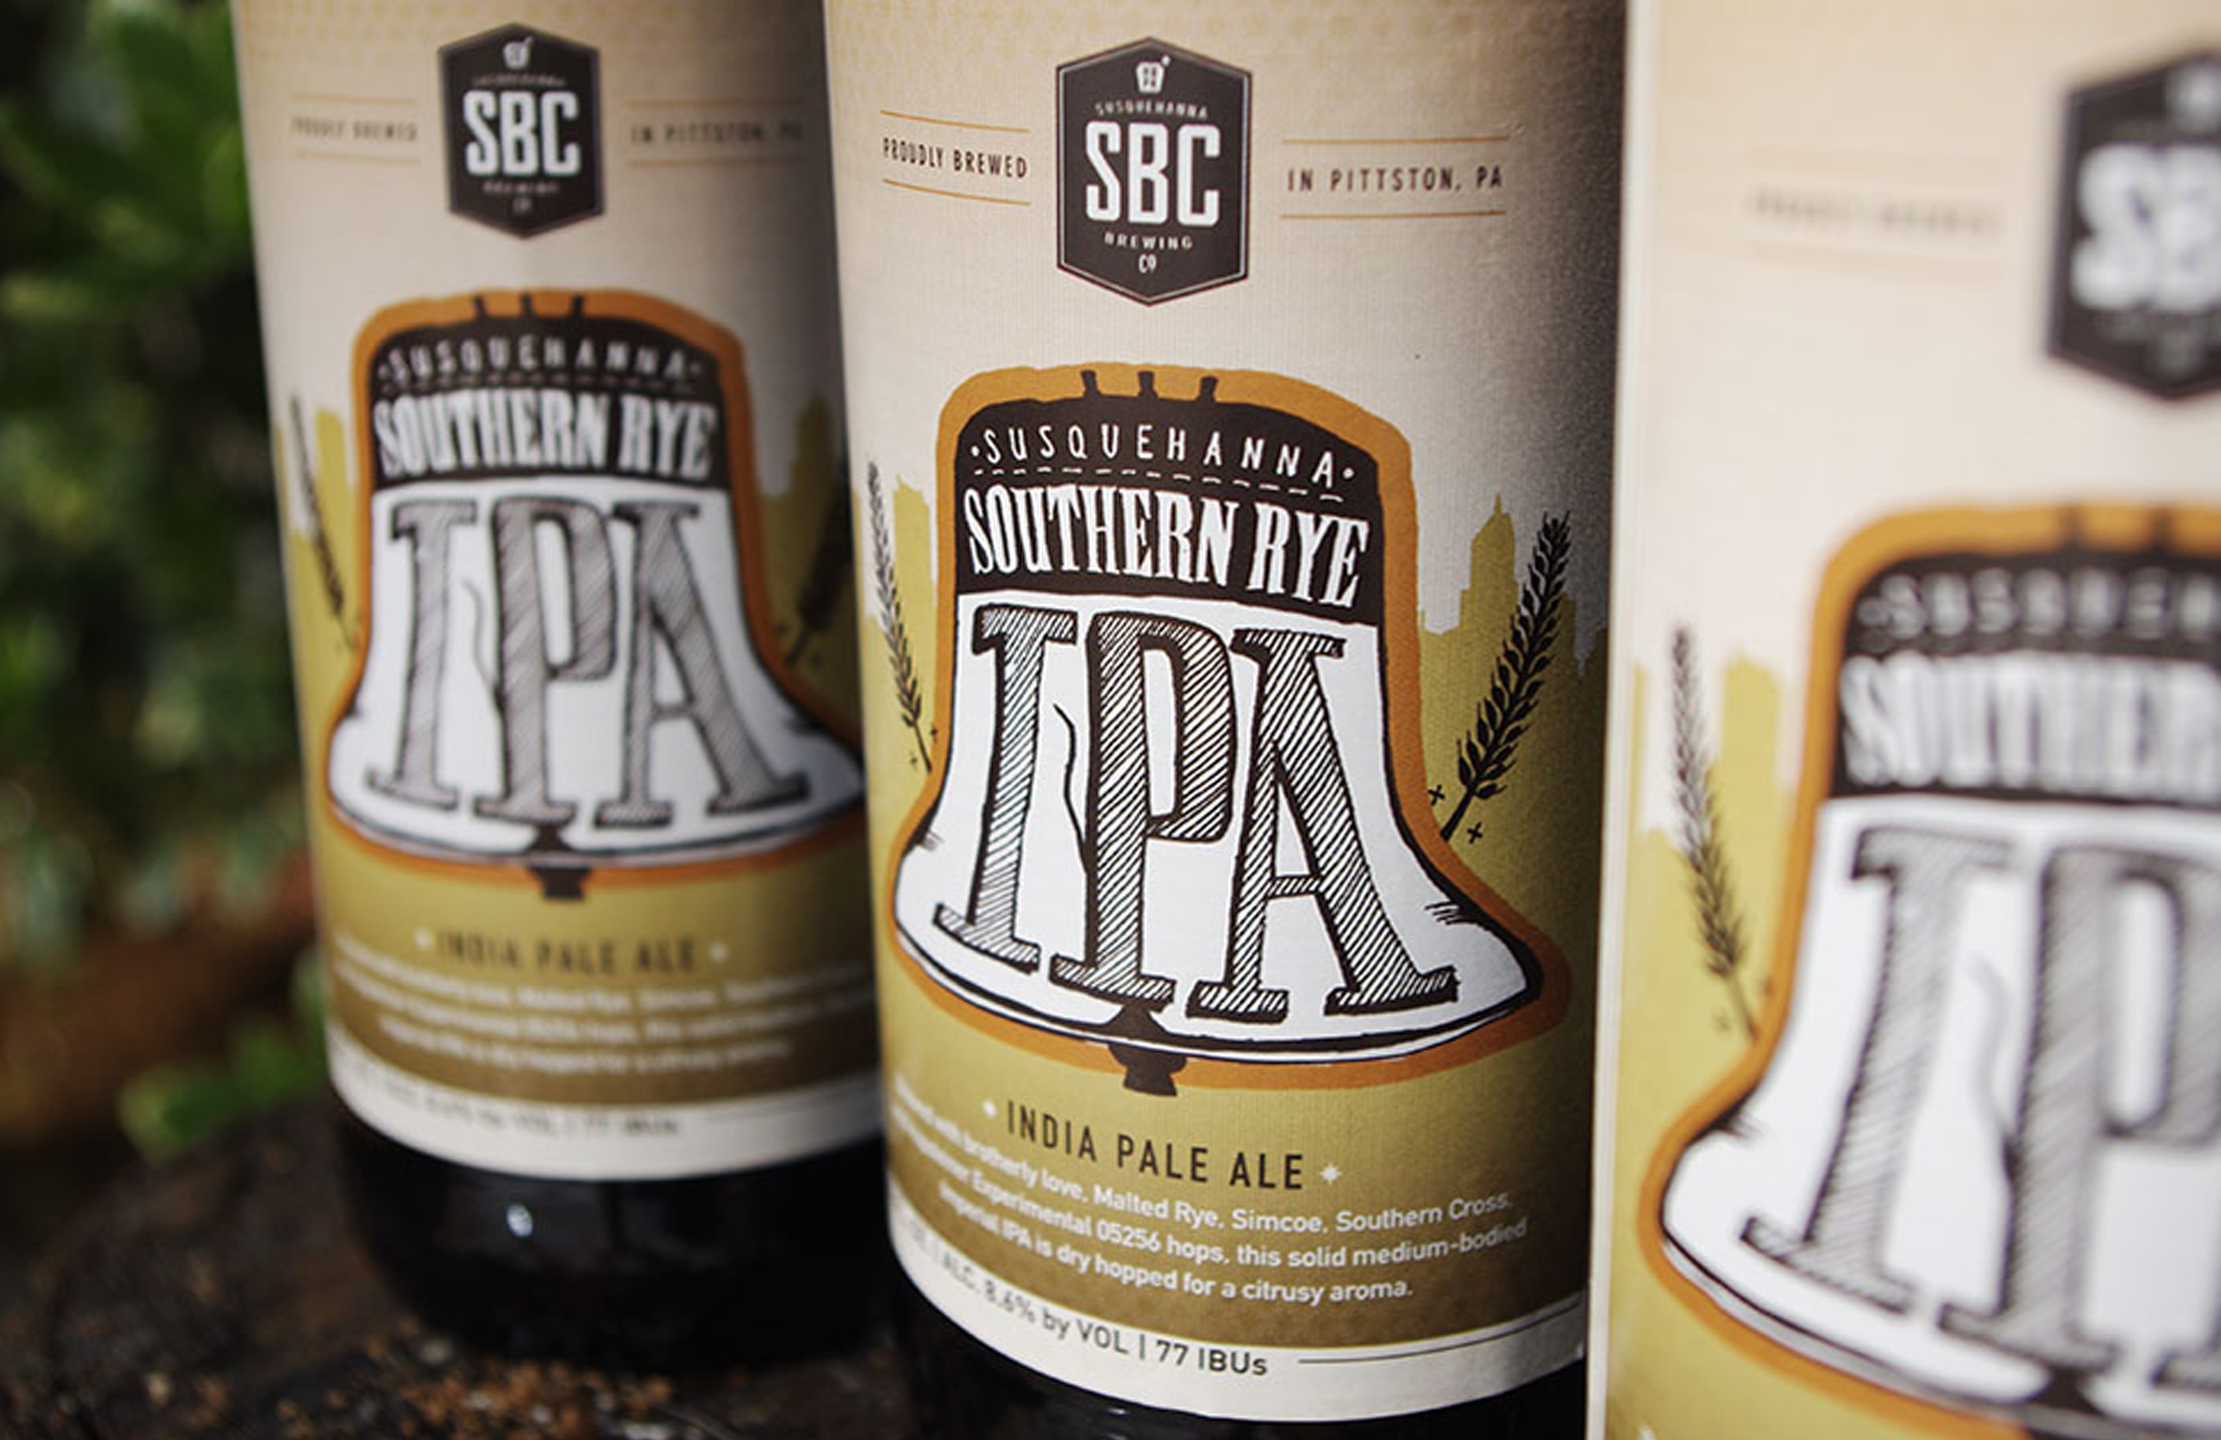 Susquehanna Breweing Co. Southern Rye IPA Brand by Just Make Things